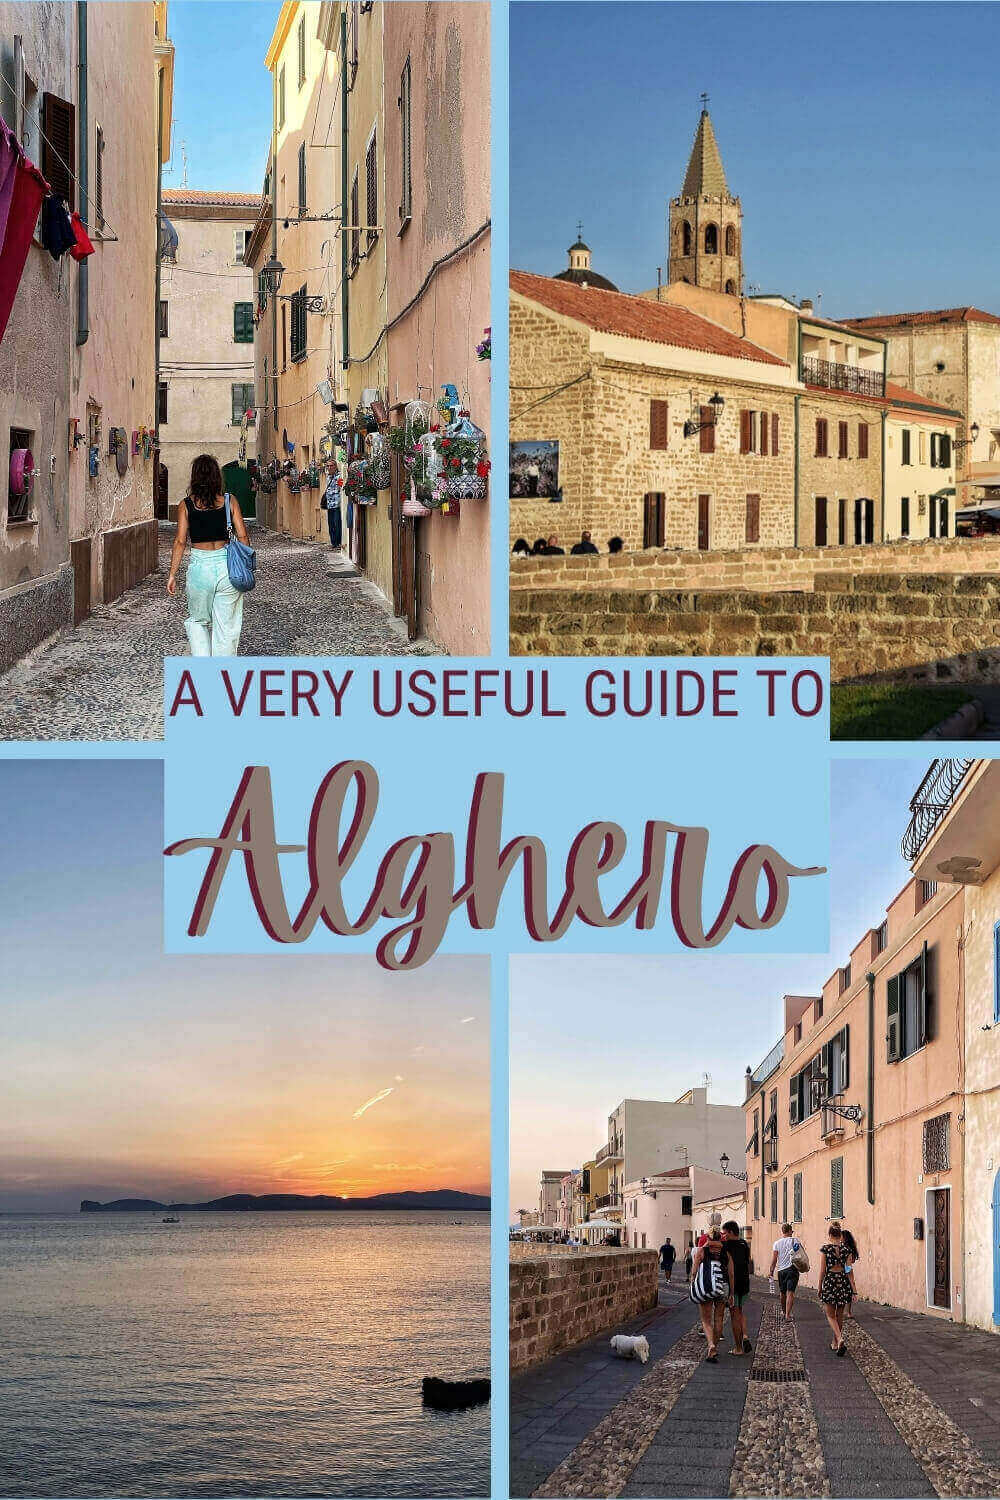 Read about the things to see and do in Alghero, Sardinia - via @c_tavani